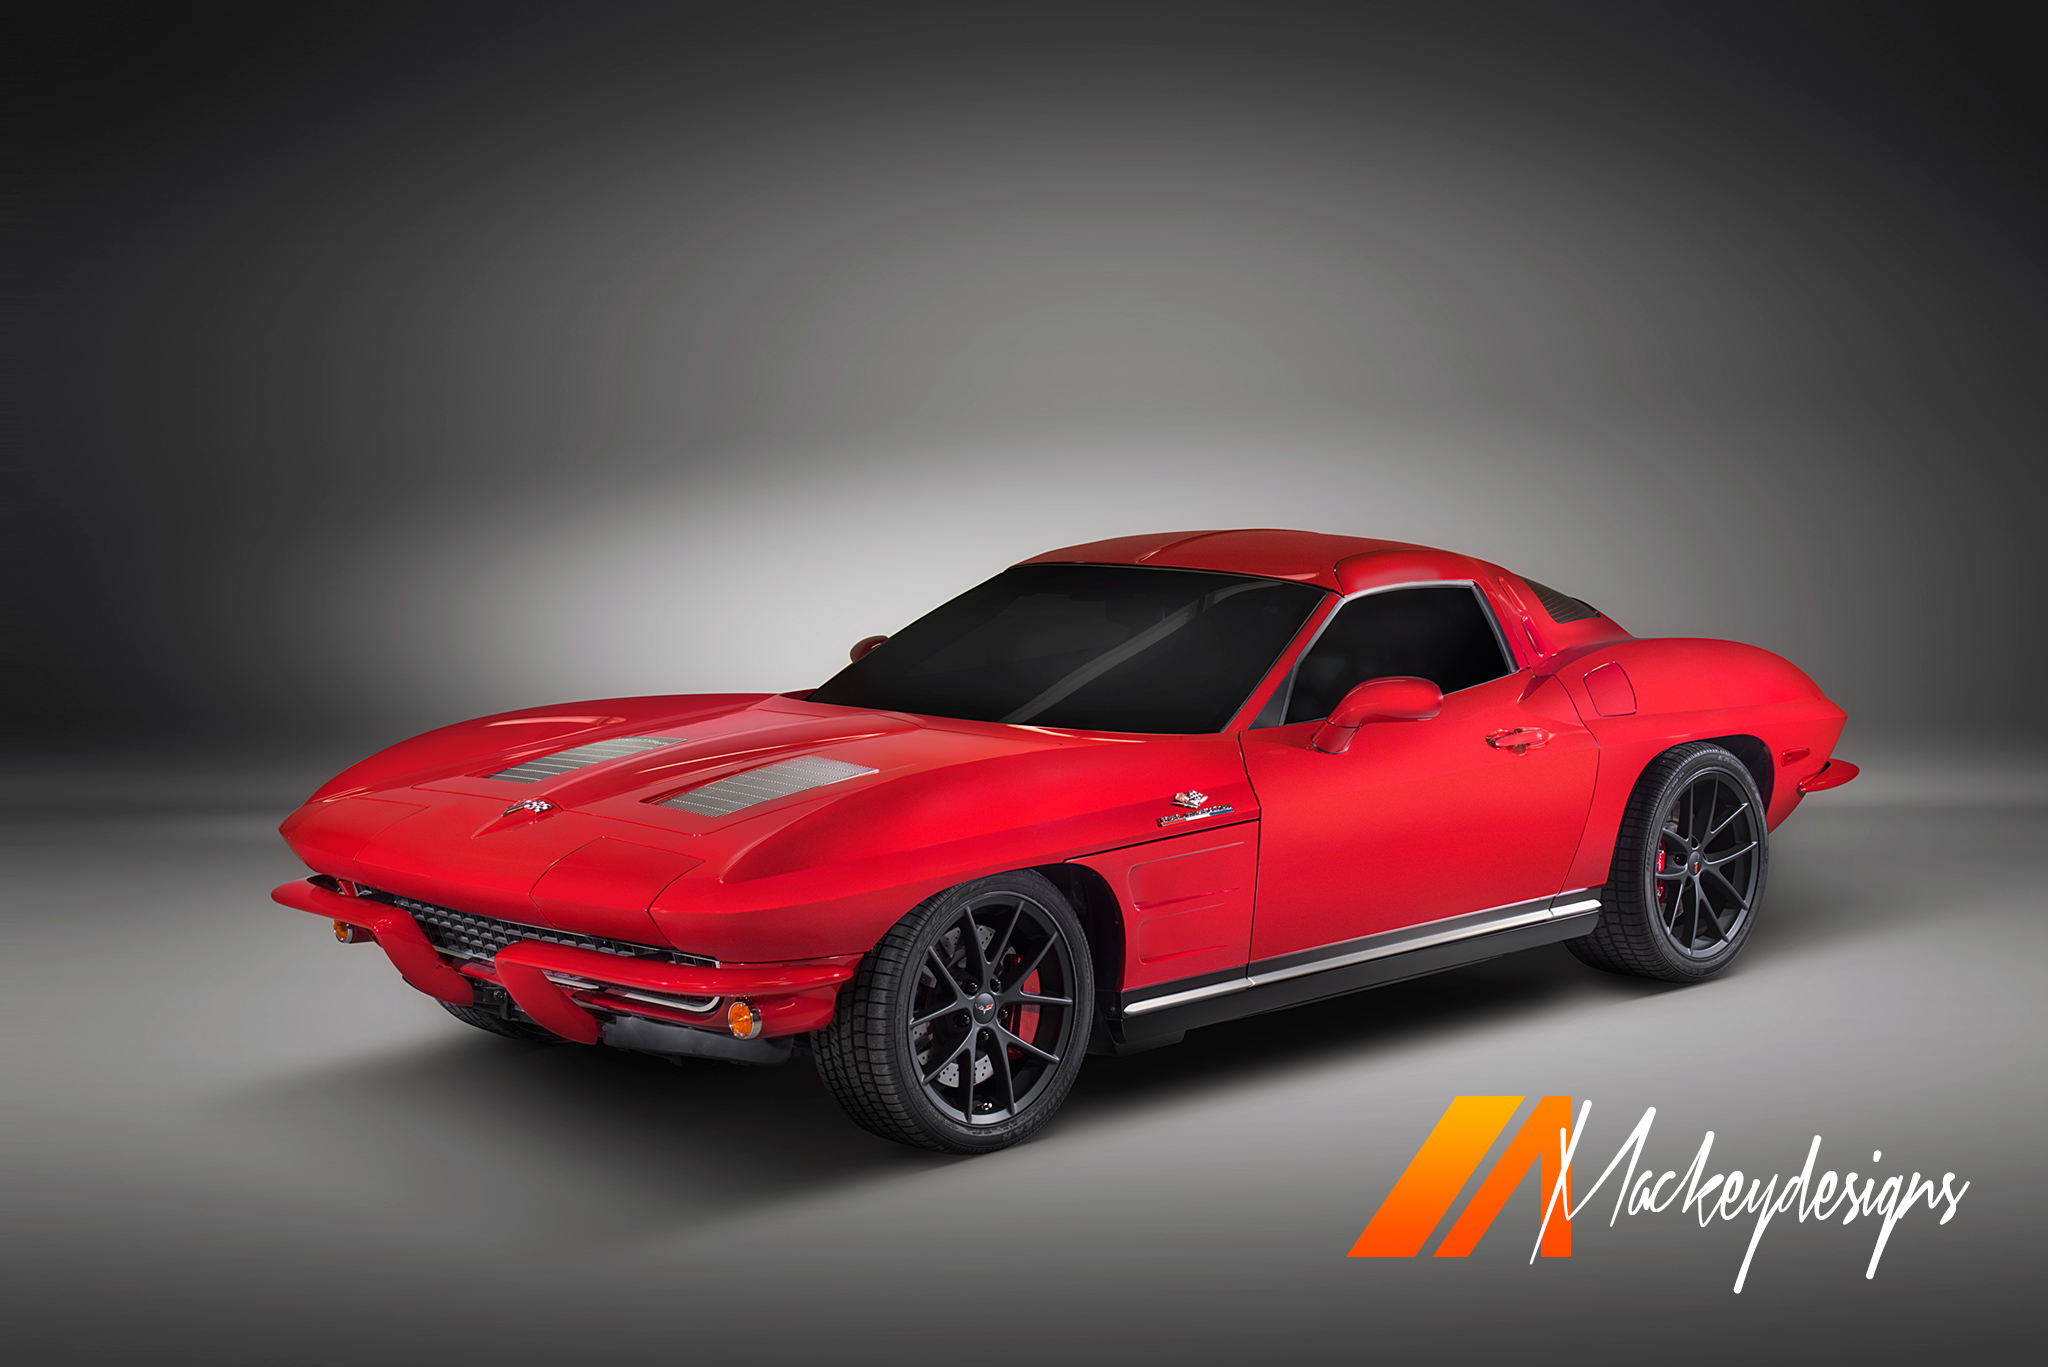 Automotive Photographer - Seattle - Josh Mackey - Corvette